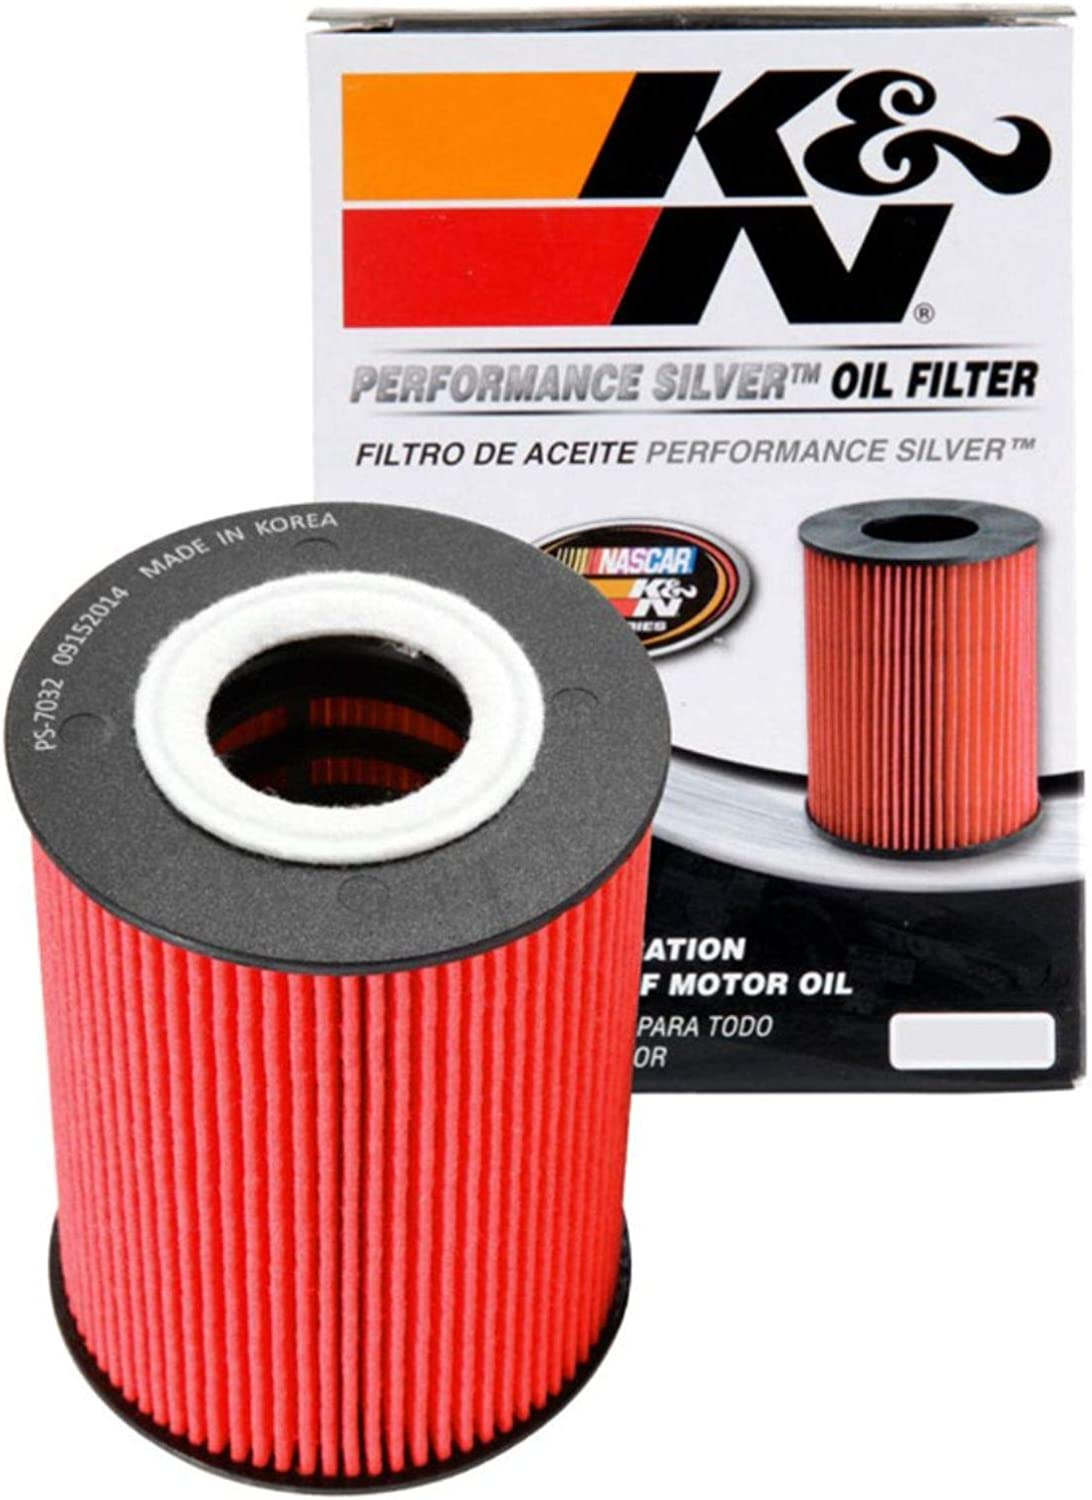 for Porsche 911 OEM Mahle Engine Oil Filter at thermostat housing